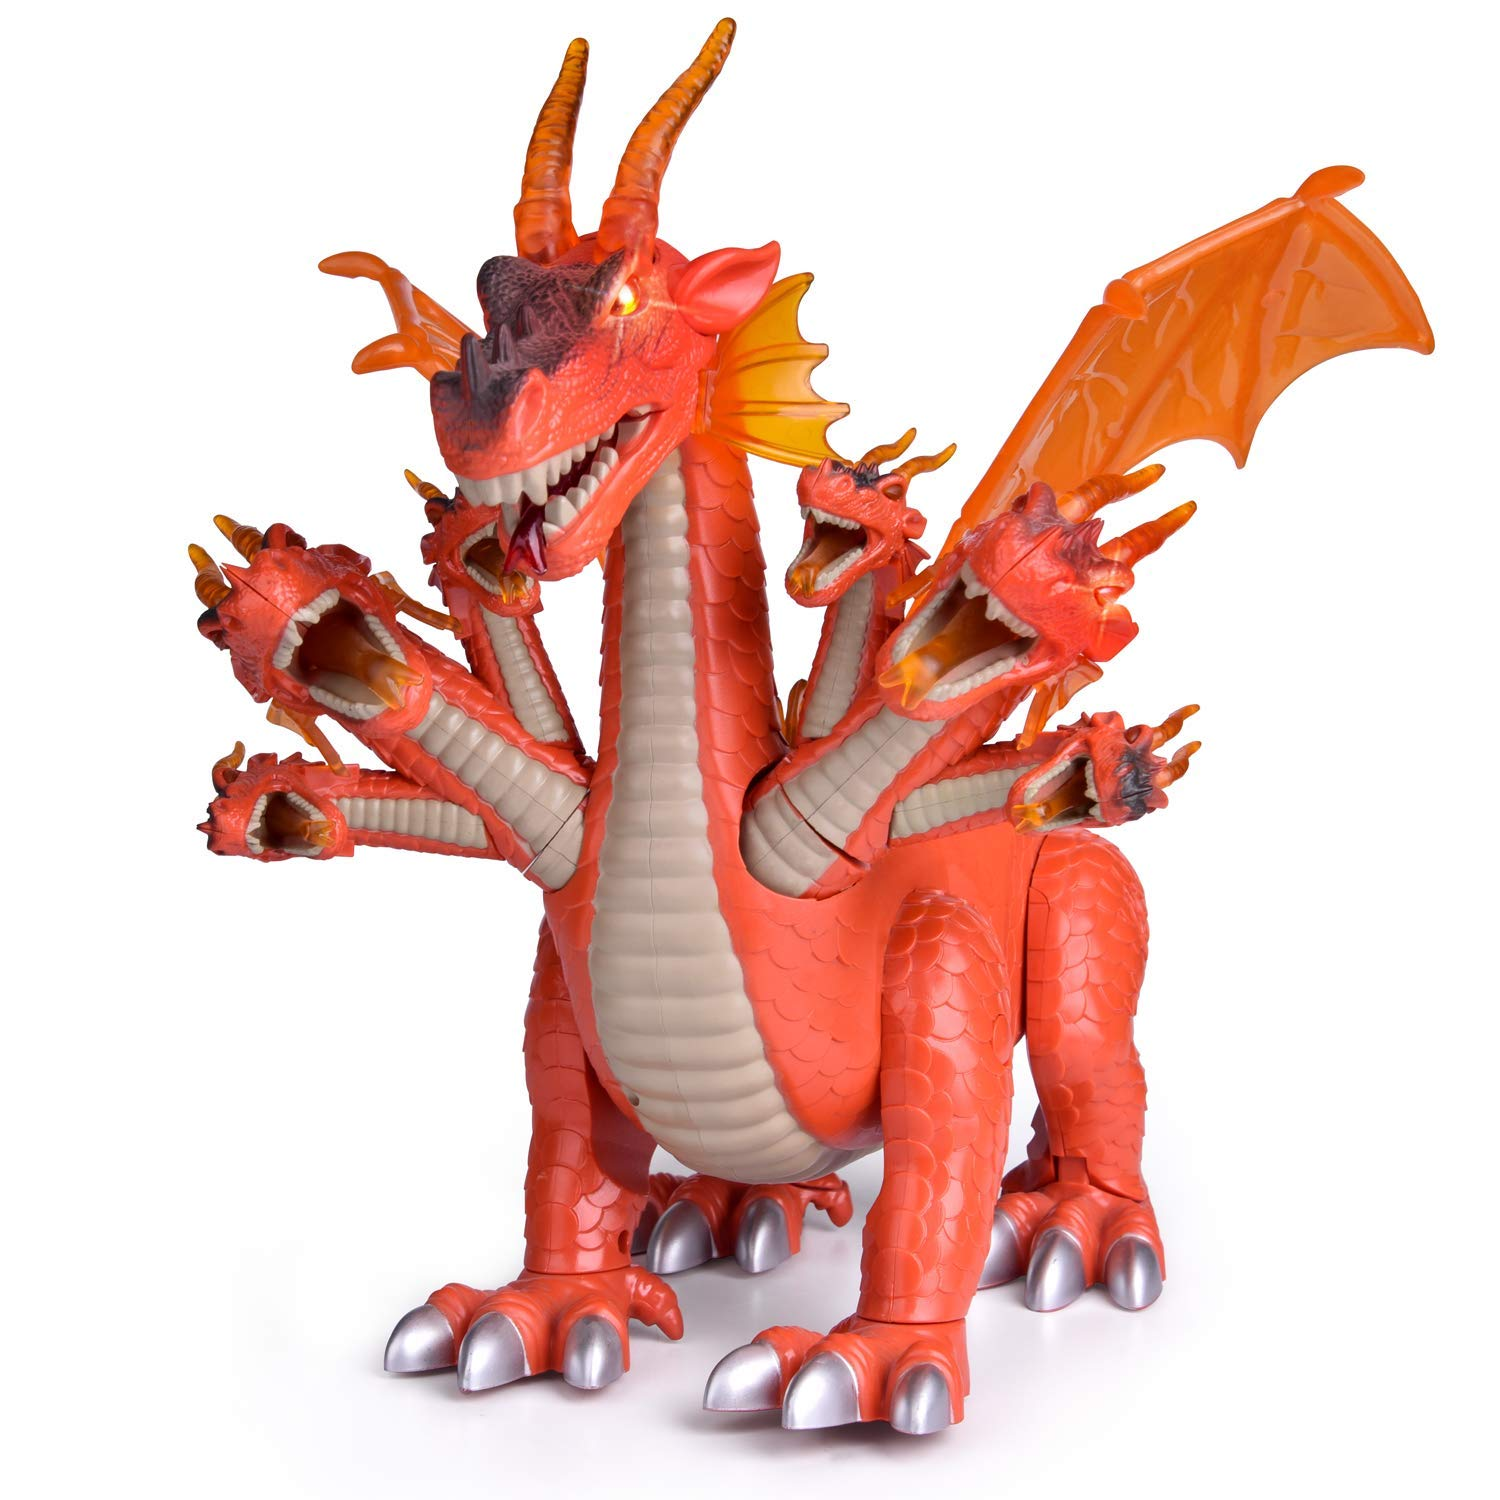 """FUN LITTLE TOYS 10"""" Dragon Toys for Boys and Girls, 7 Headed Walking Toy Dragon Figure with Lights and Sounds, Birthday Gifts for Kids"""